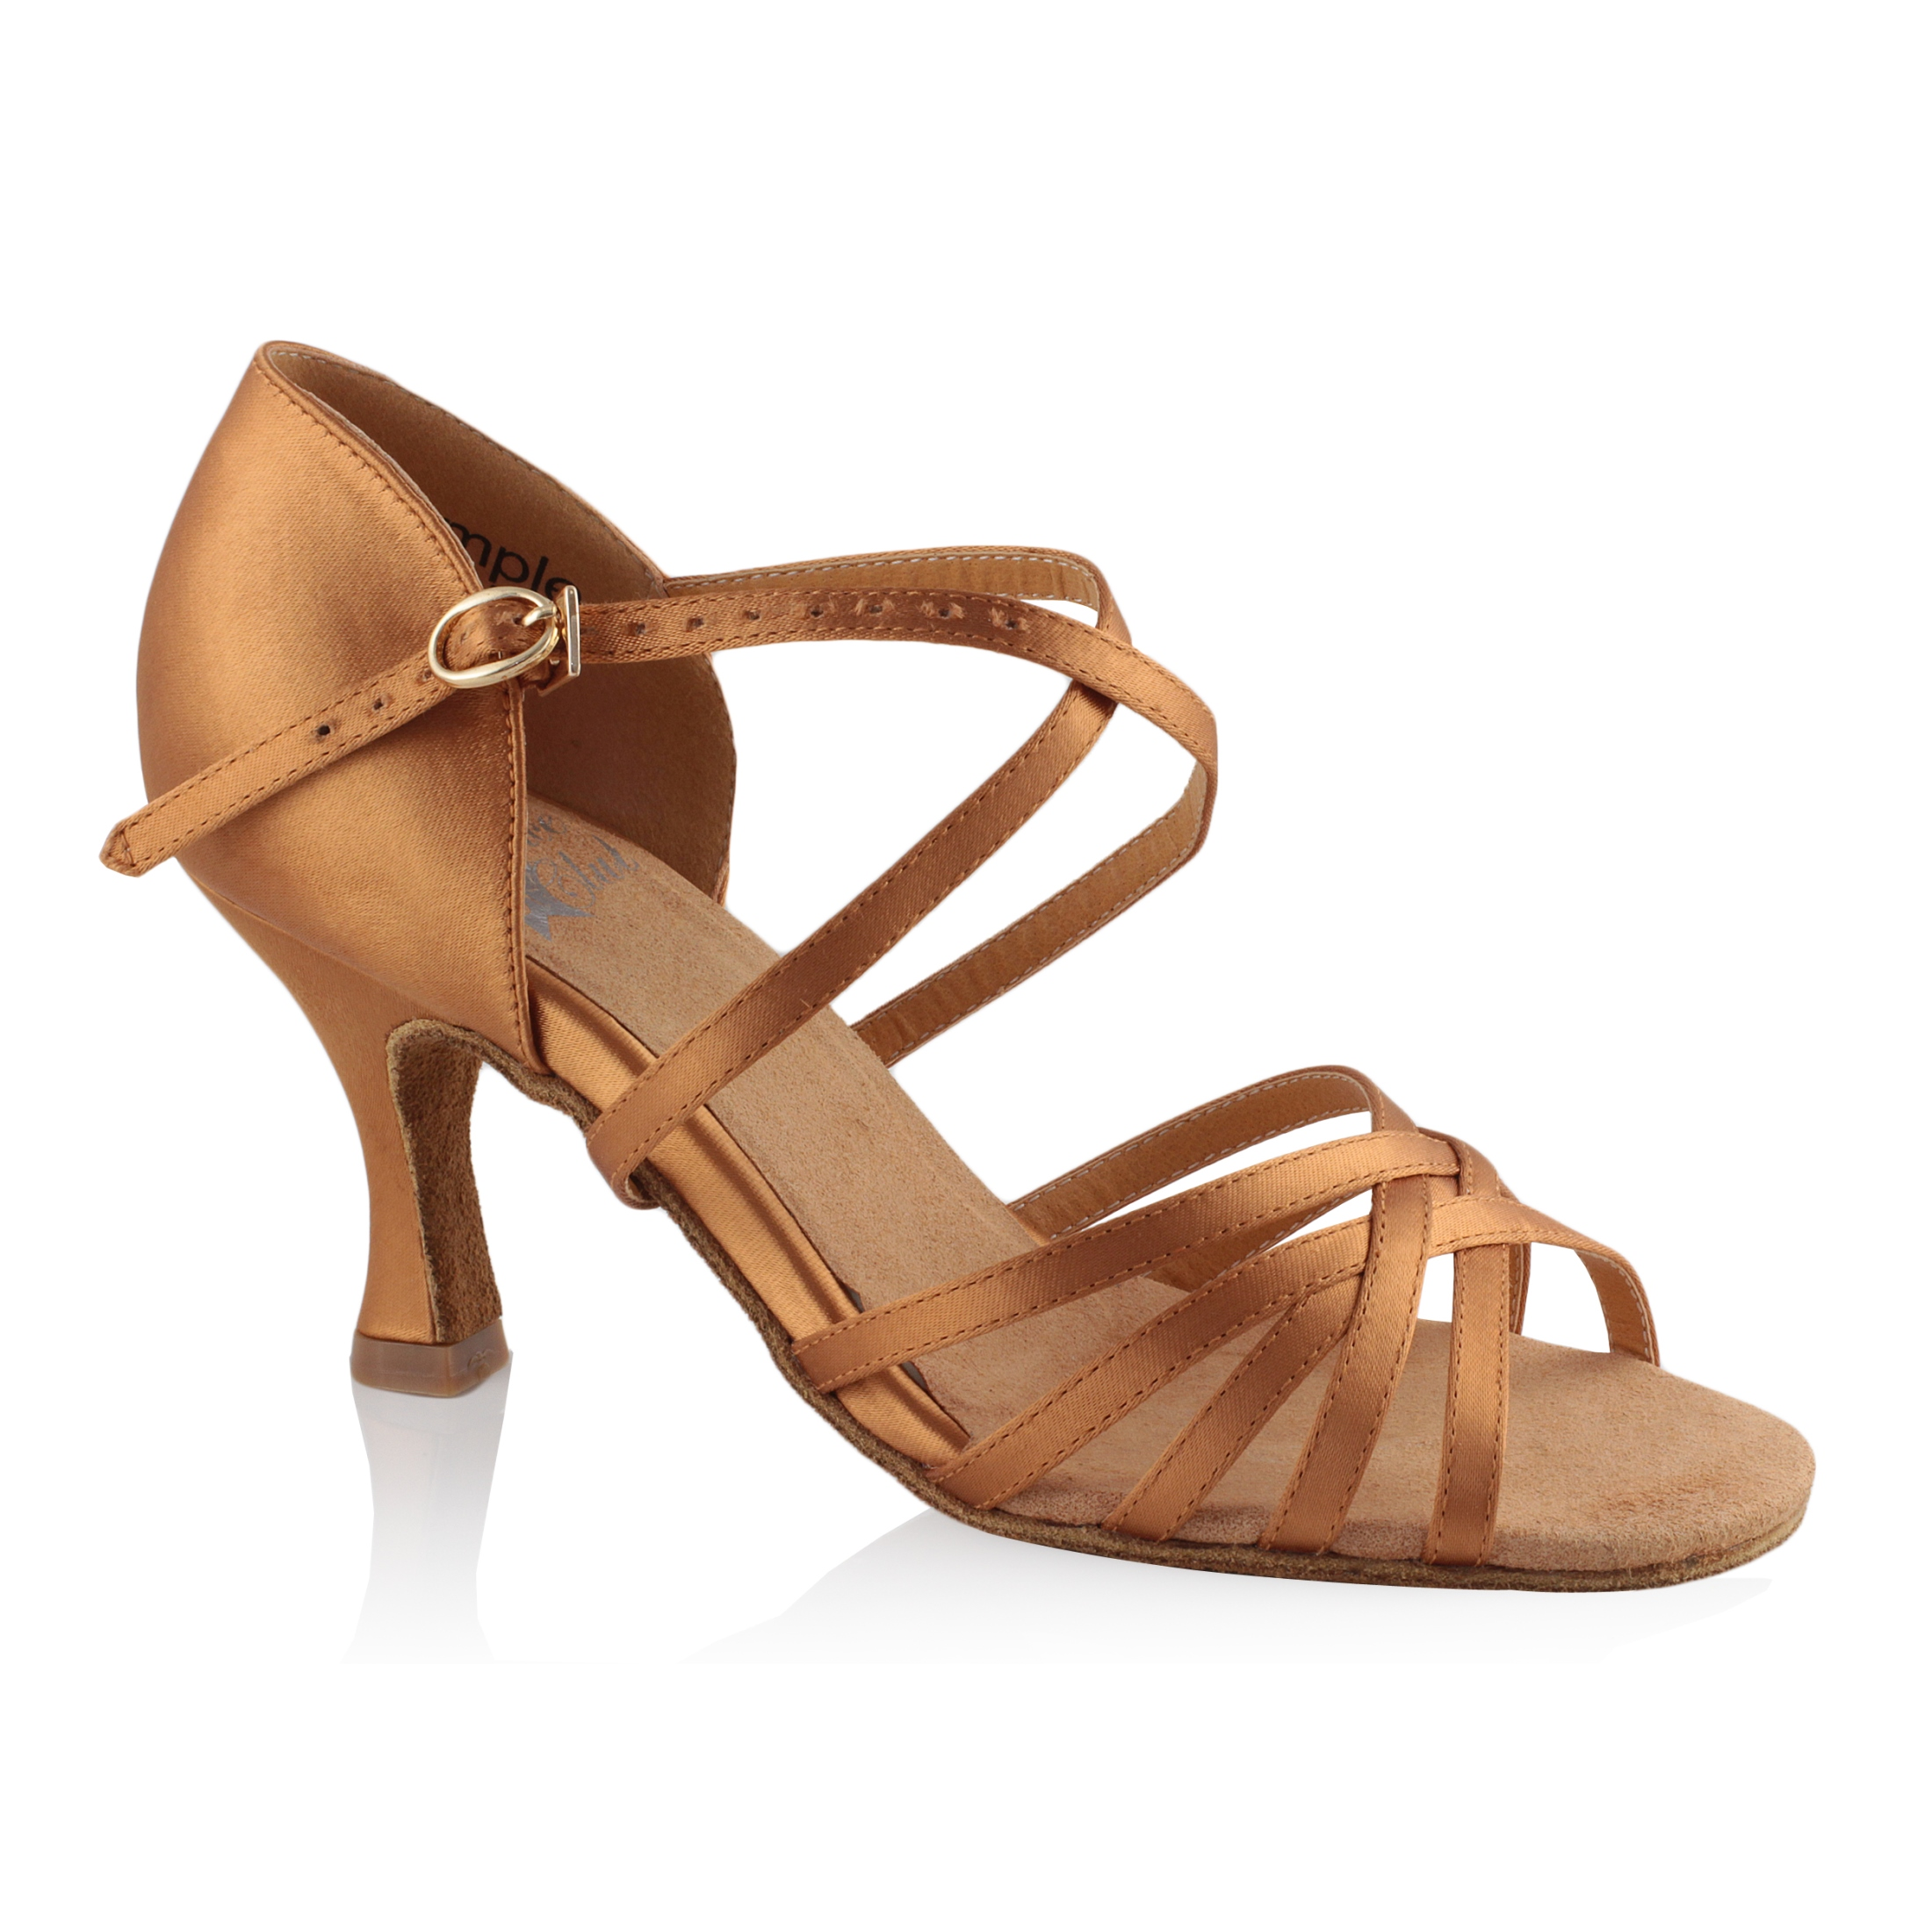 7844 - Ladies' Sandal